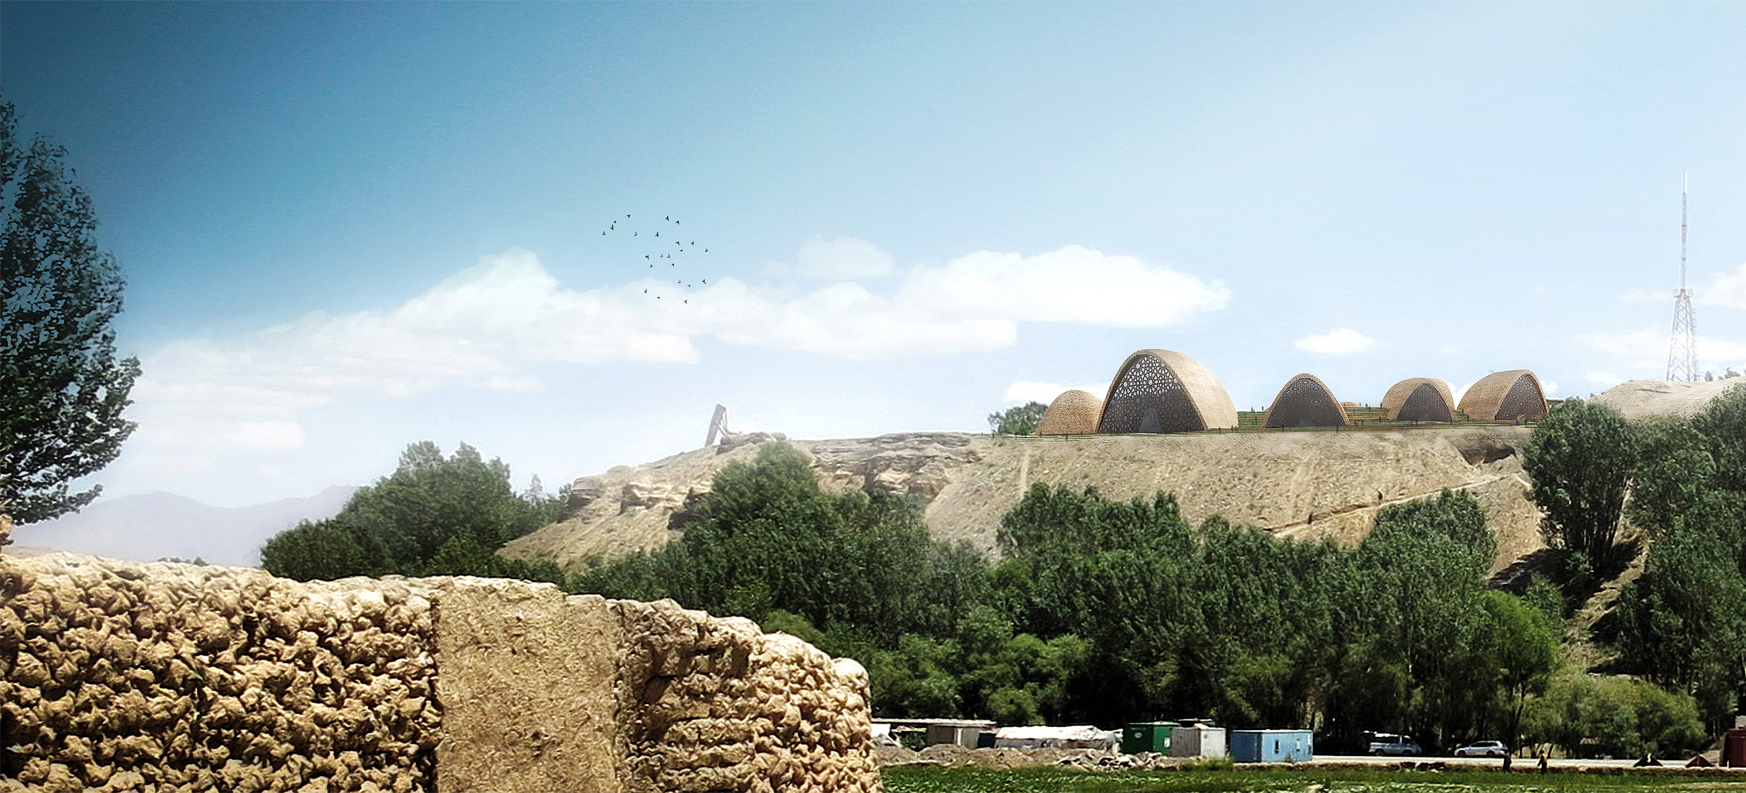 Wisp-Architects-Bamiyan-Cultural-Center-Competition-Render 6